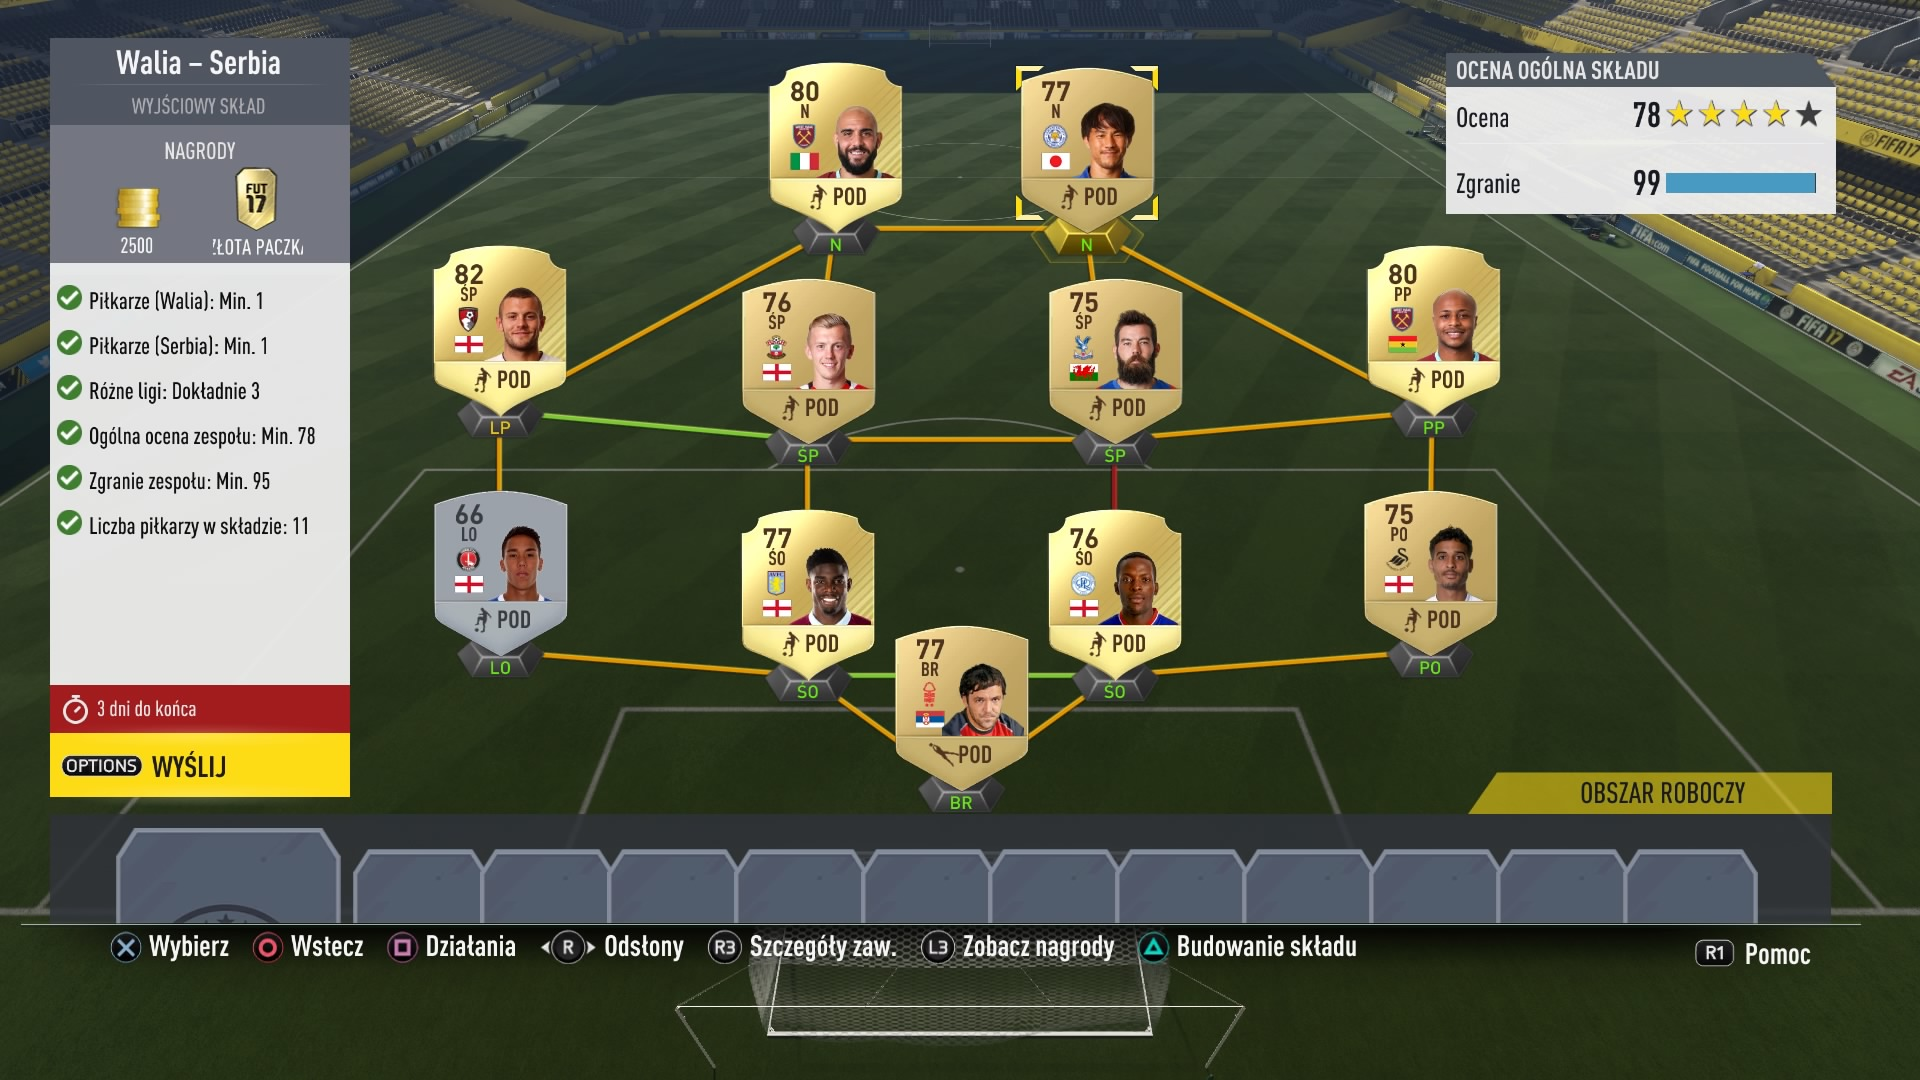 fifa 17 squad building challenges strona 10 fifa ps3 forum o playstation wiemy wszystko. Black Bedroom Furniture Sets. Home Design Ideas